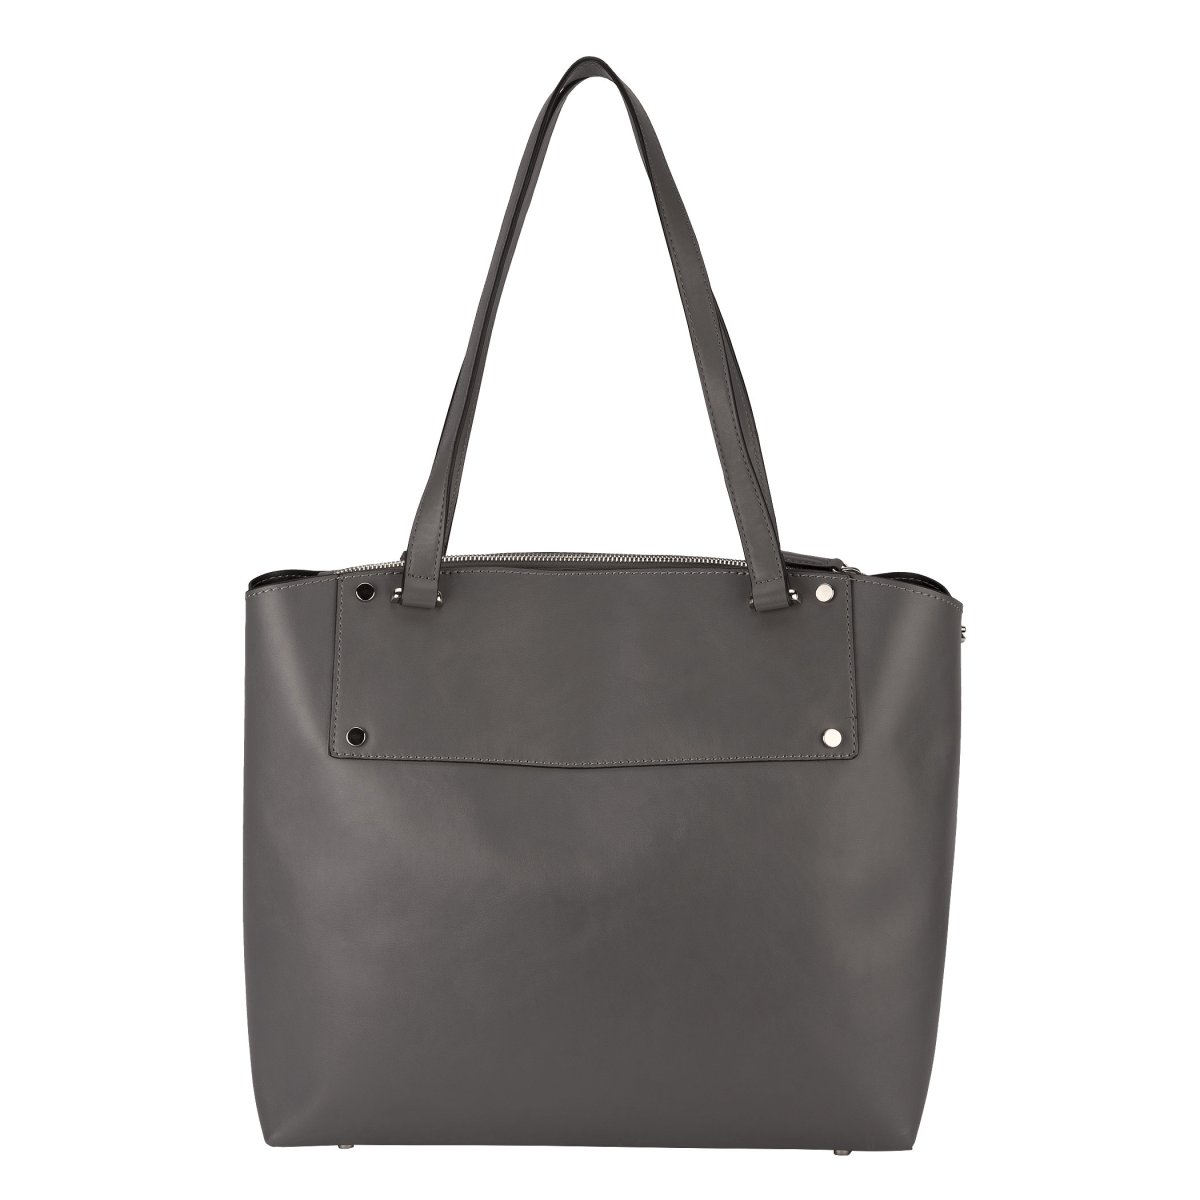 Bolso Tote Nine West Tote F16 09/16 Hb60431494-934